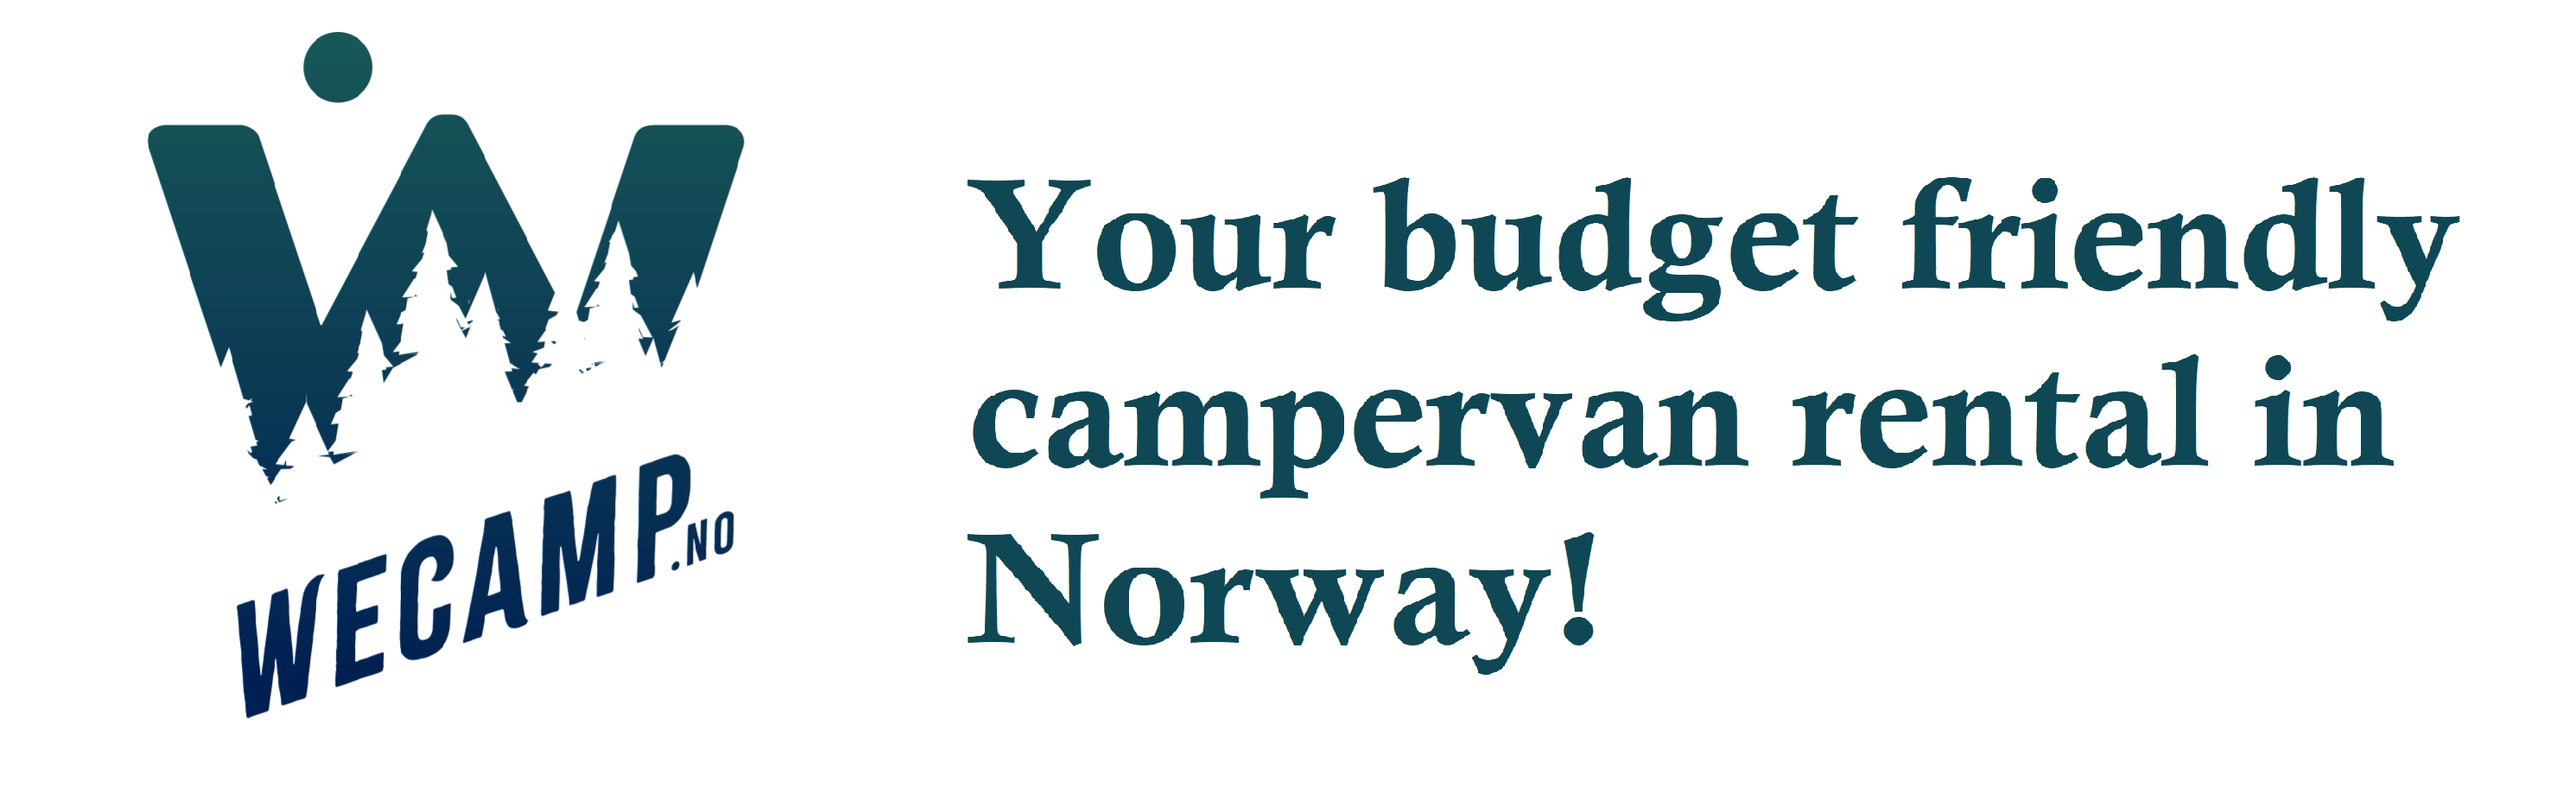 Camper van rental in Norway